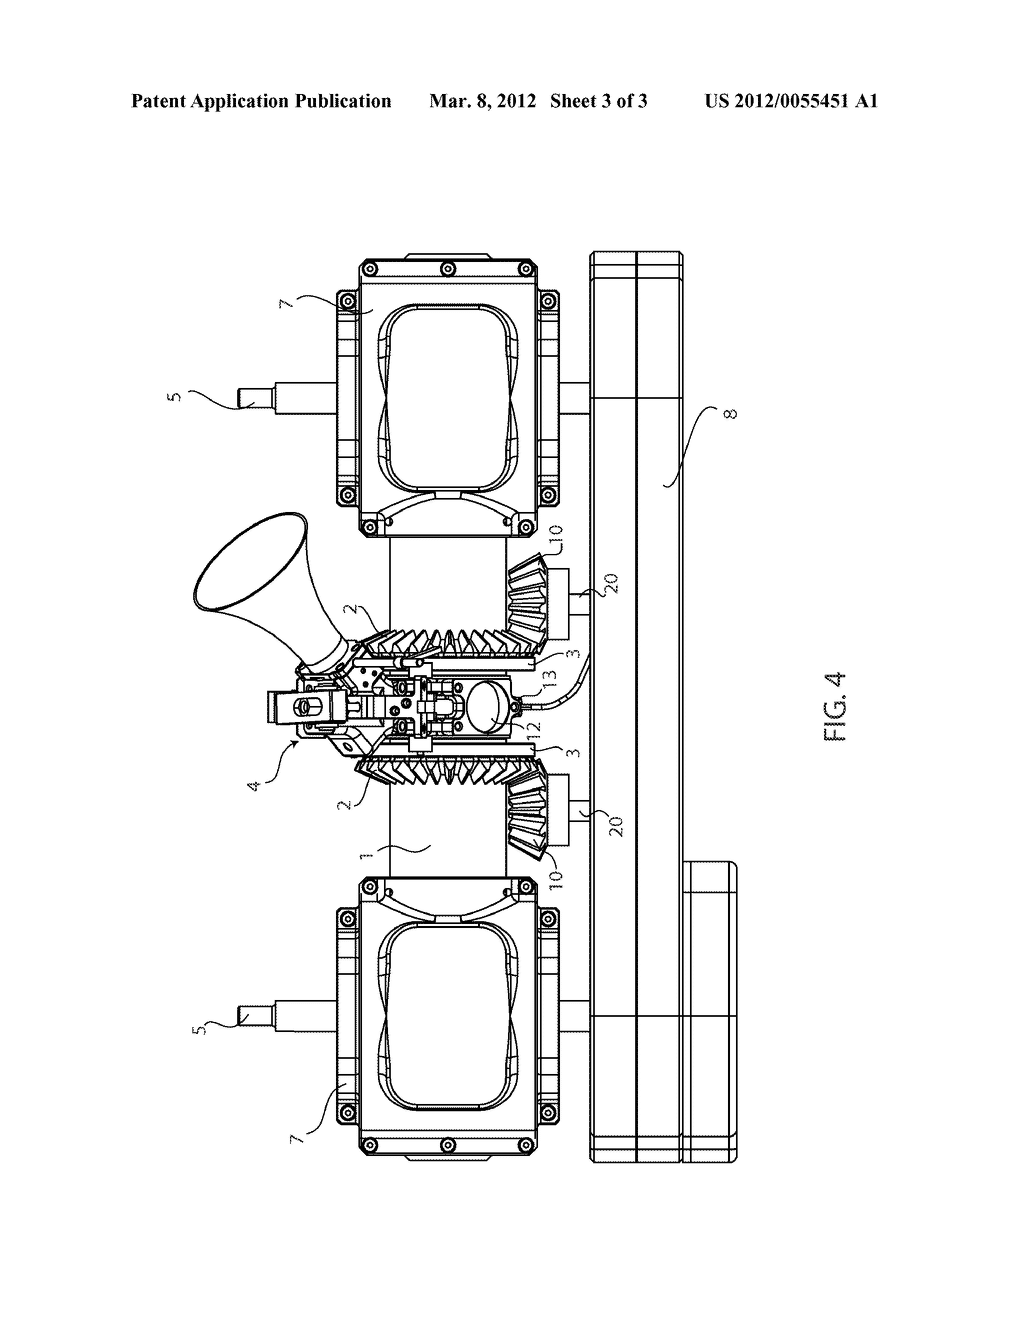 Inwardly Opposed Pistons, Fixed Position Common Cylinder Engine with  External Induction - diagram, schematic, and image 04